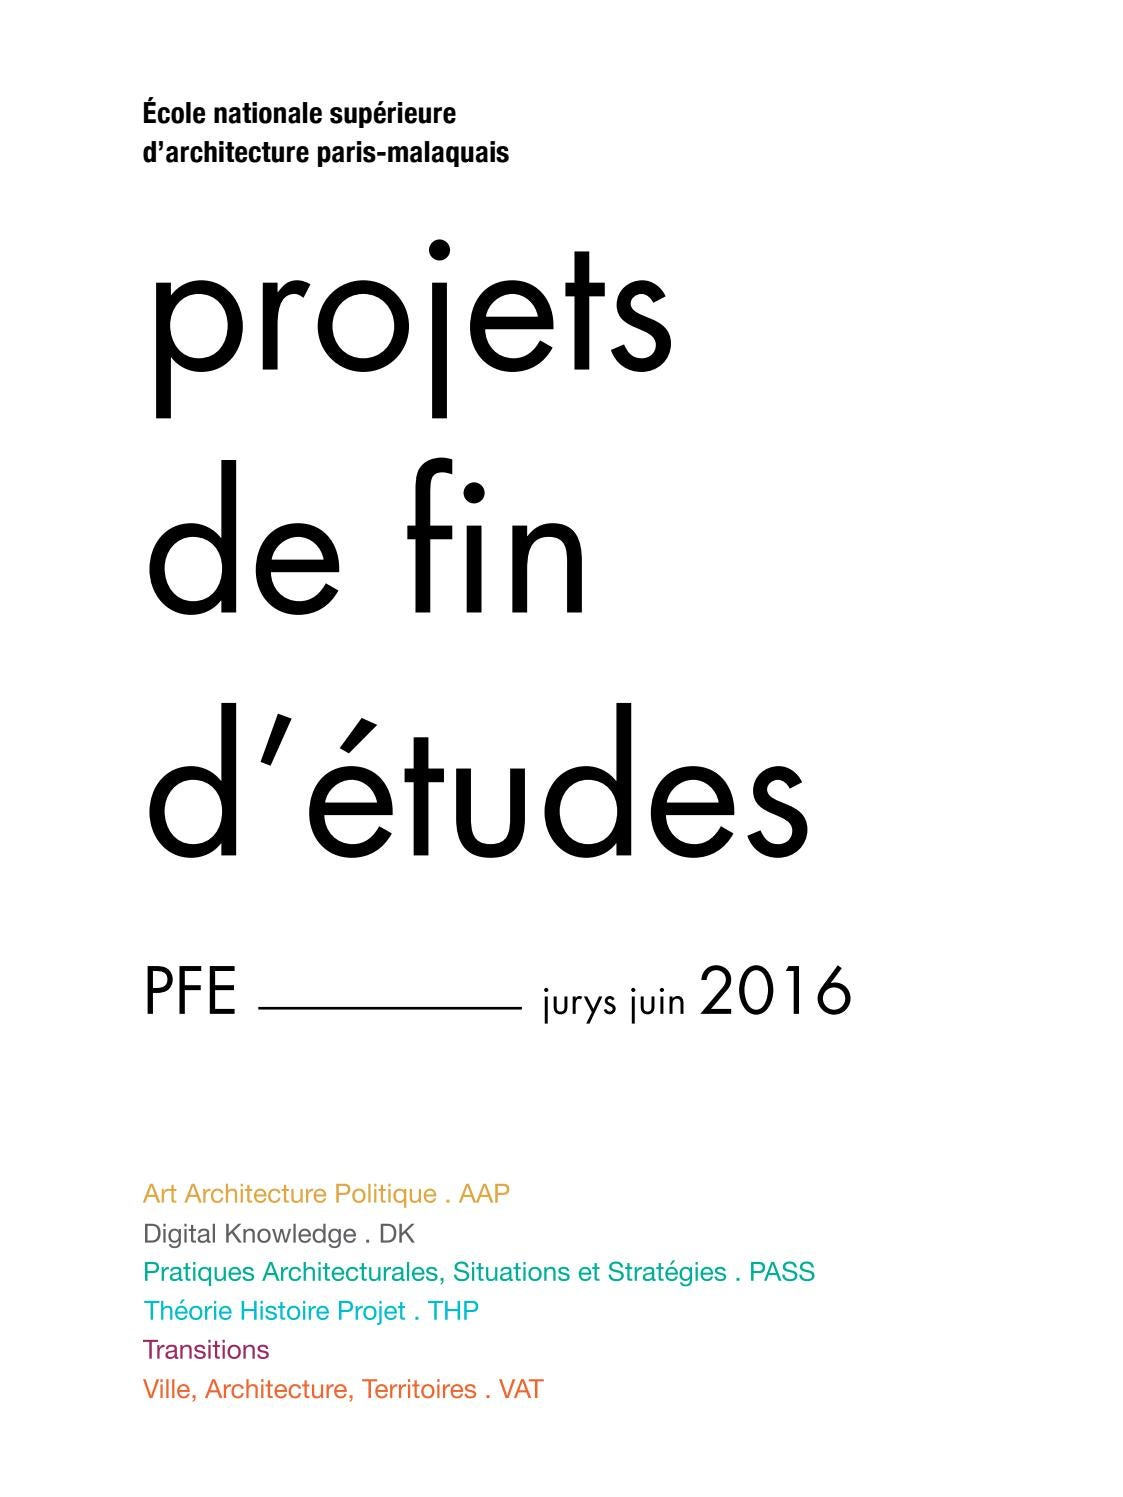 catalogue pfe ensa paris-malaquais 2016 by ensapm